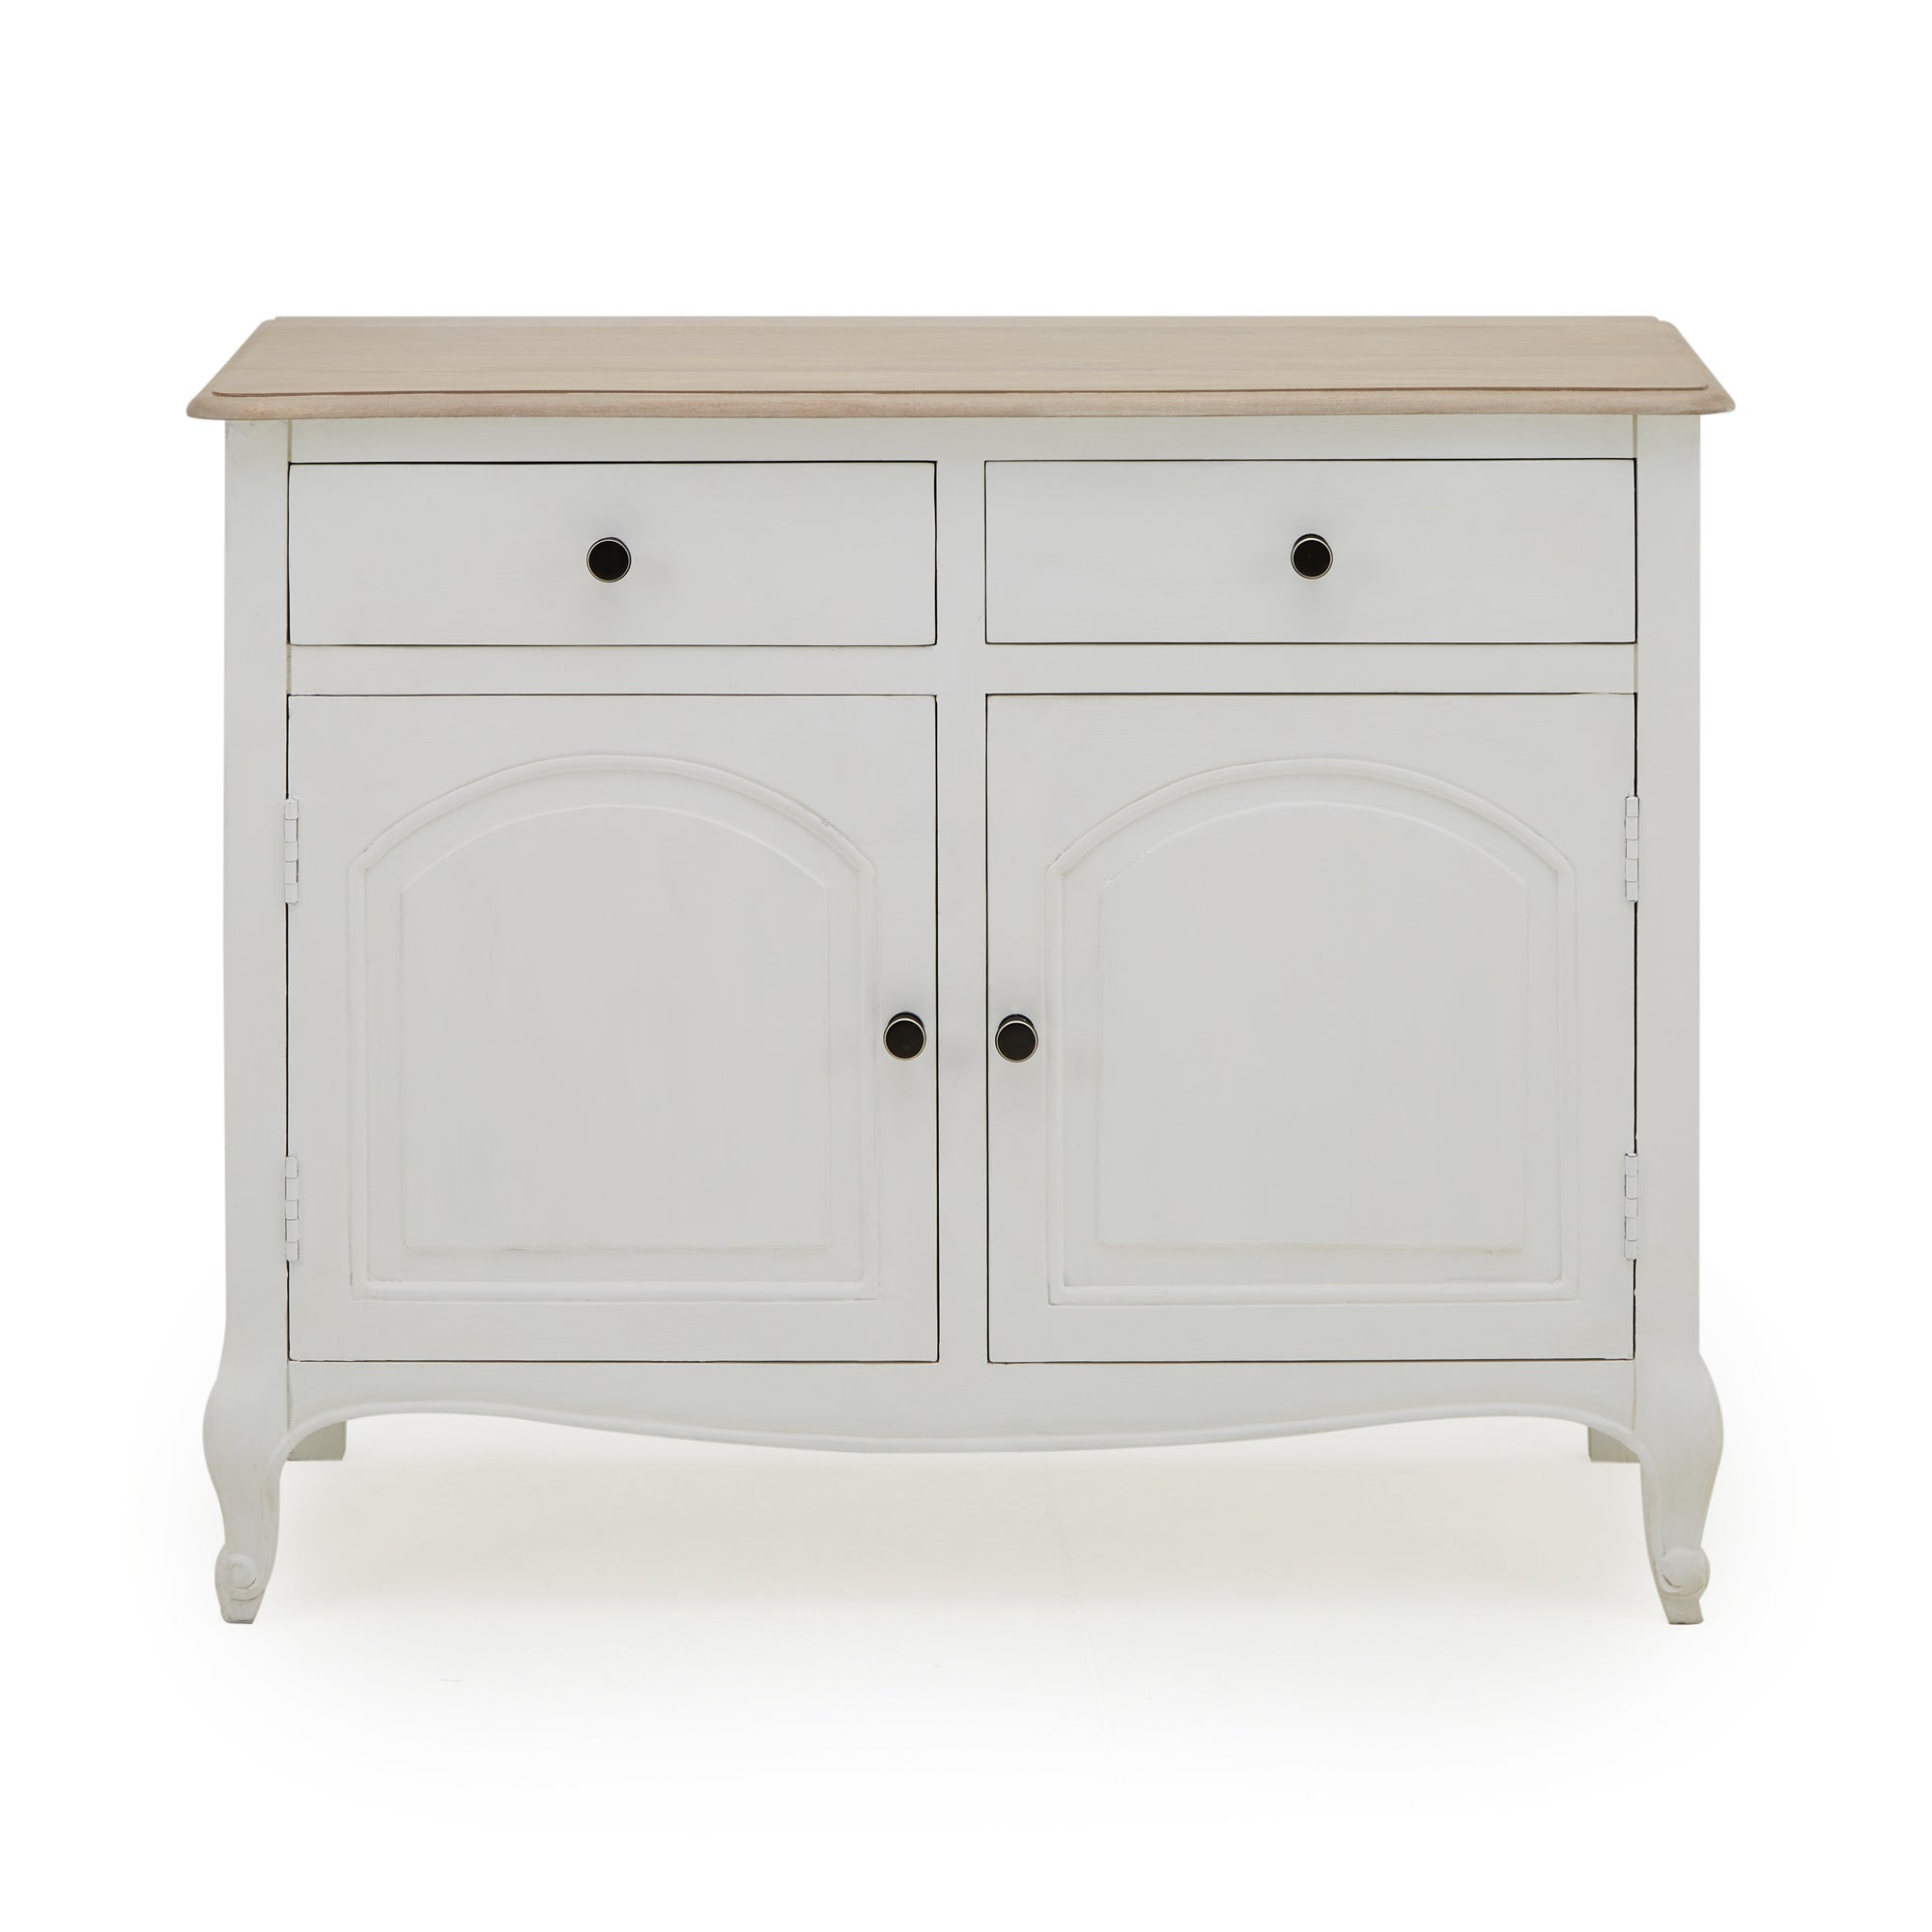 Photo of Amelie painted small sideboard white